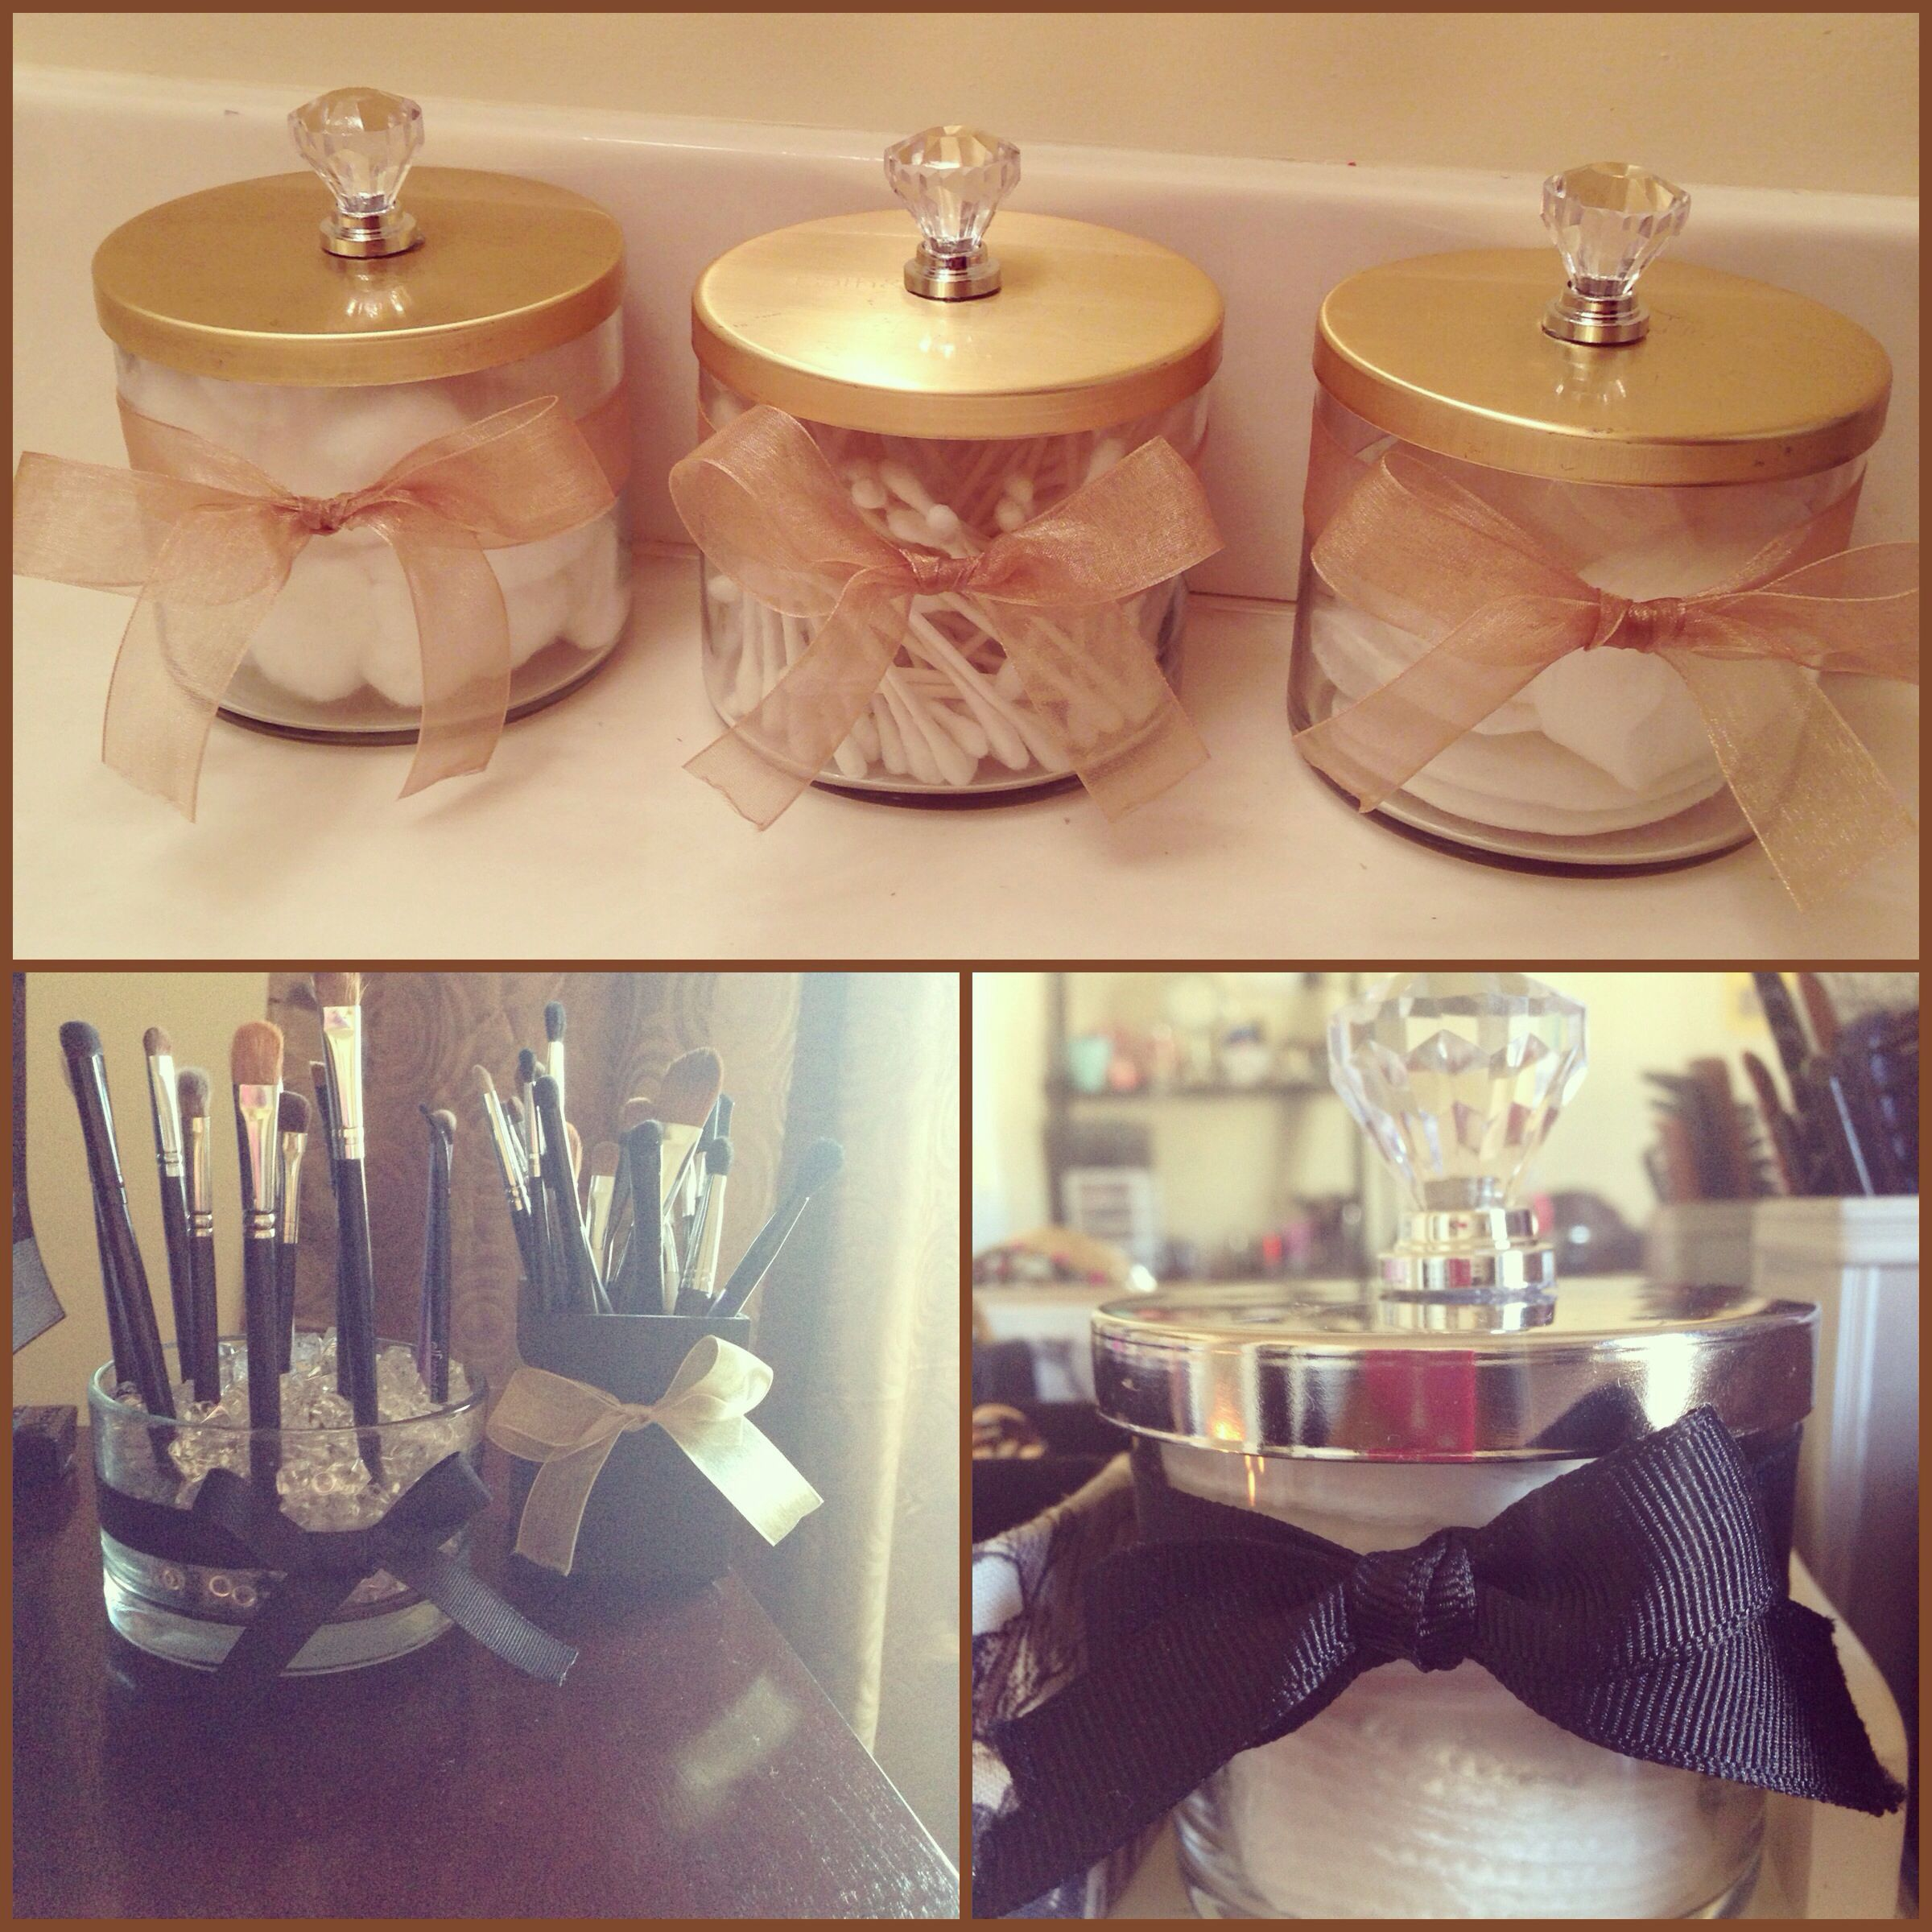 Added some ribbons and knobs on old bath and body works candle jars that were just sitting around the house. #DIY #candles